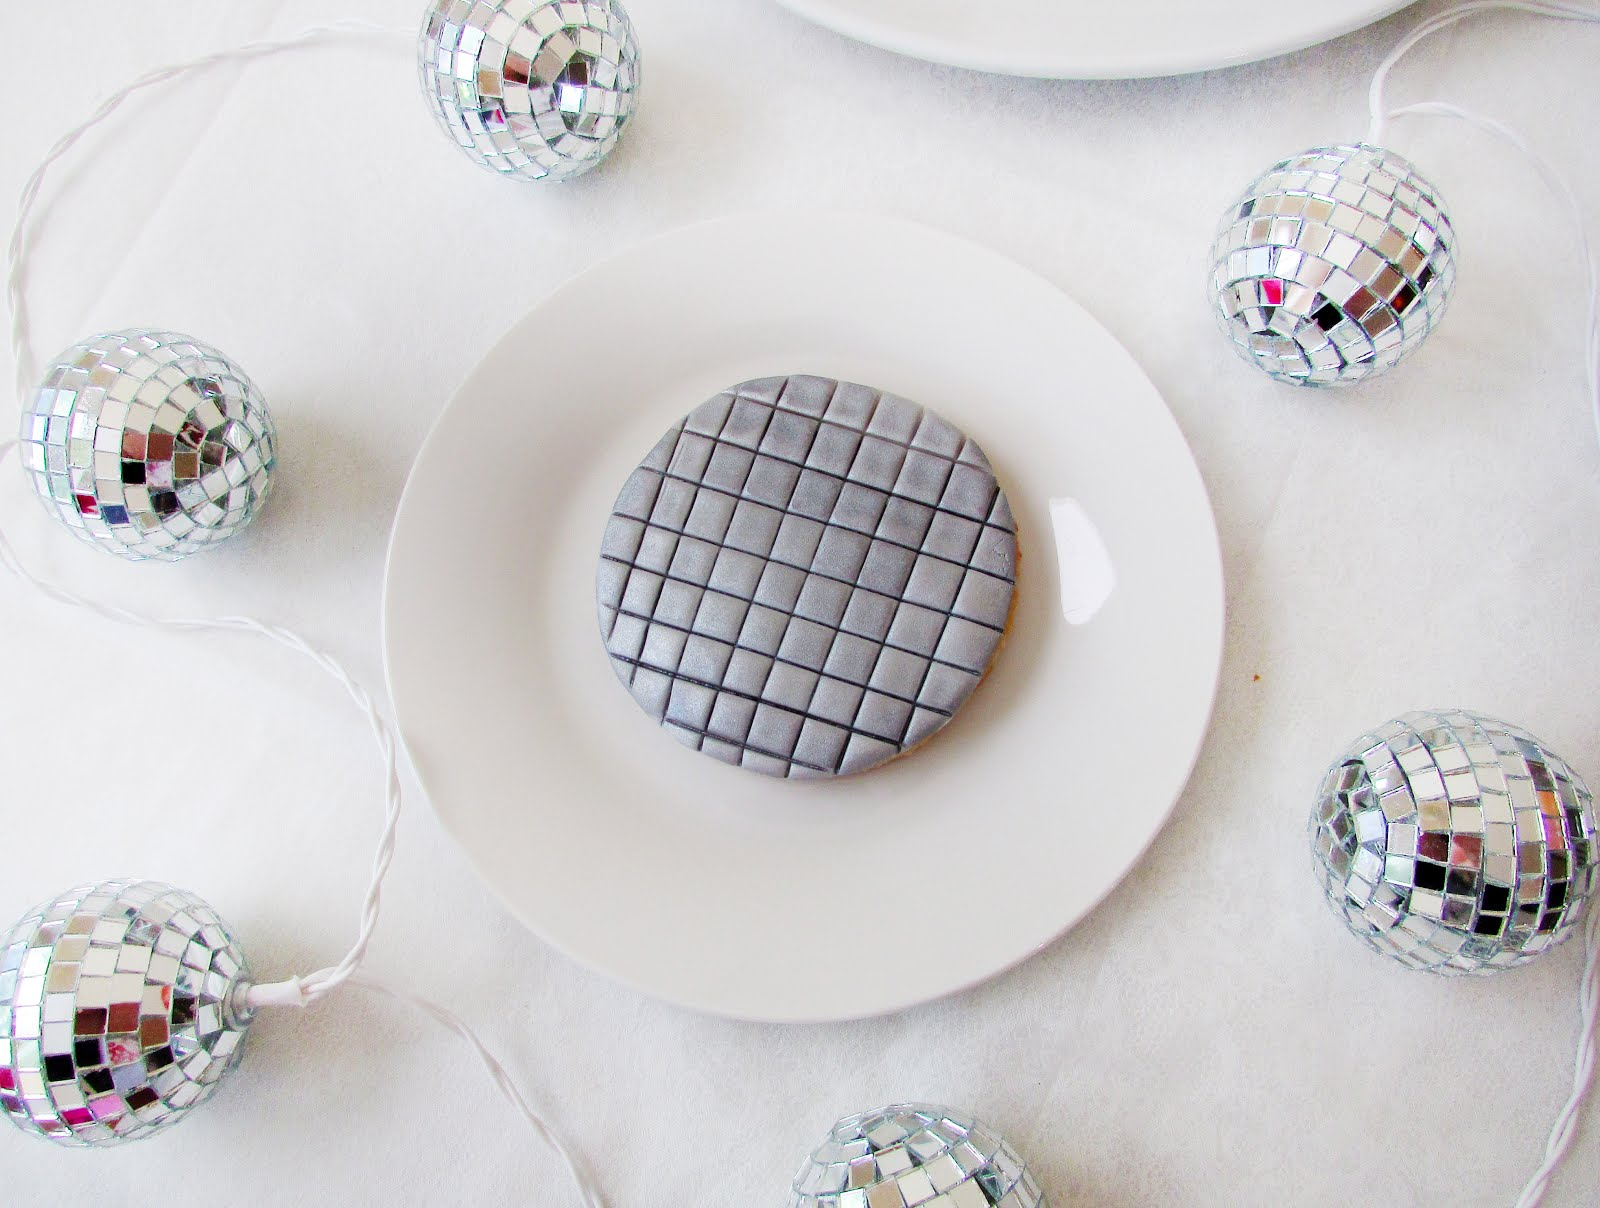 DIY Disco Ball Sugar Cookies for New Year's